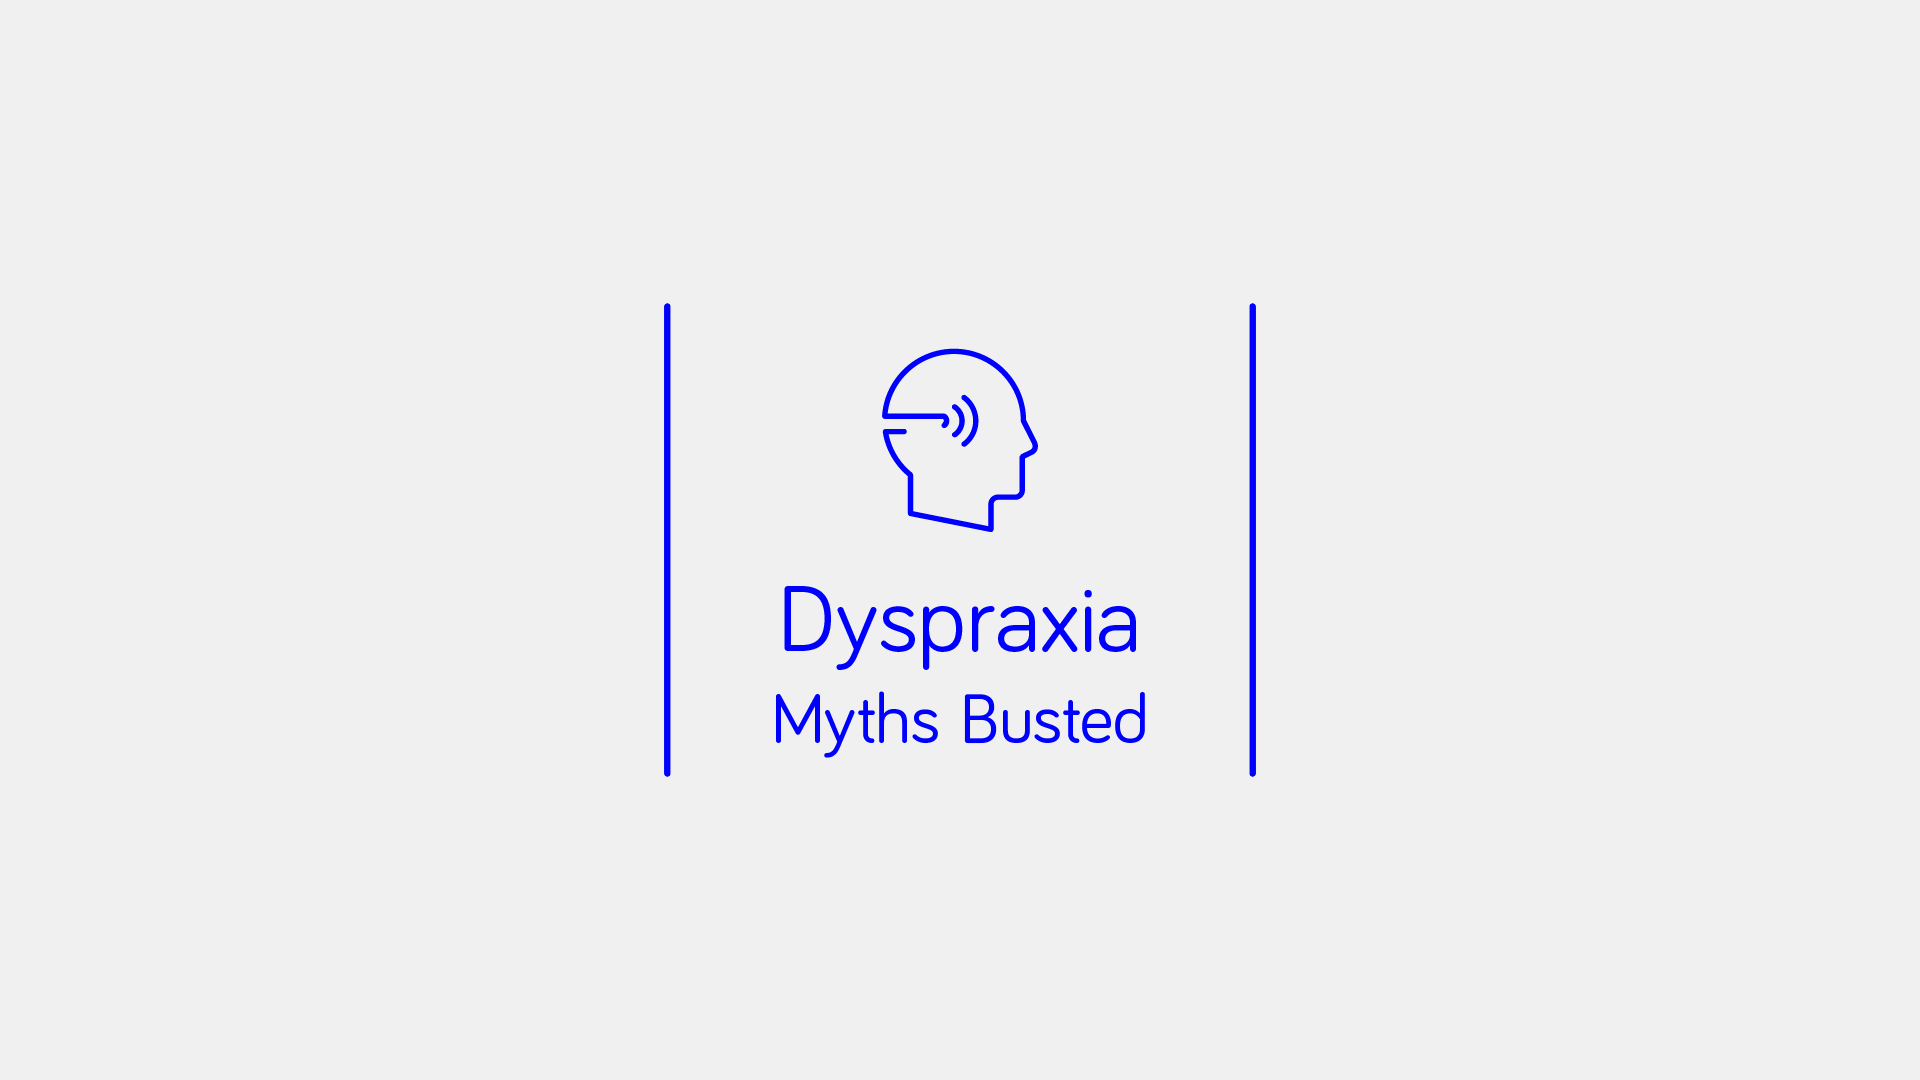 Dyspraxia and Myths